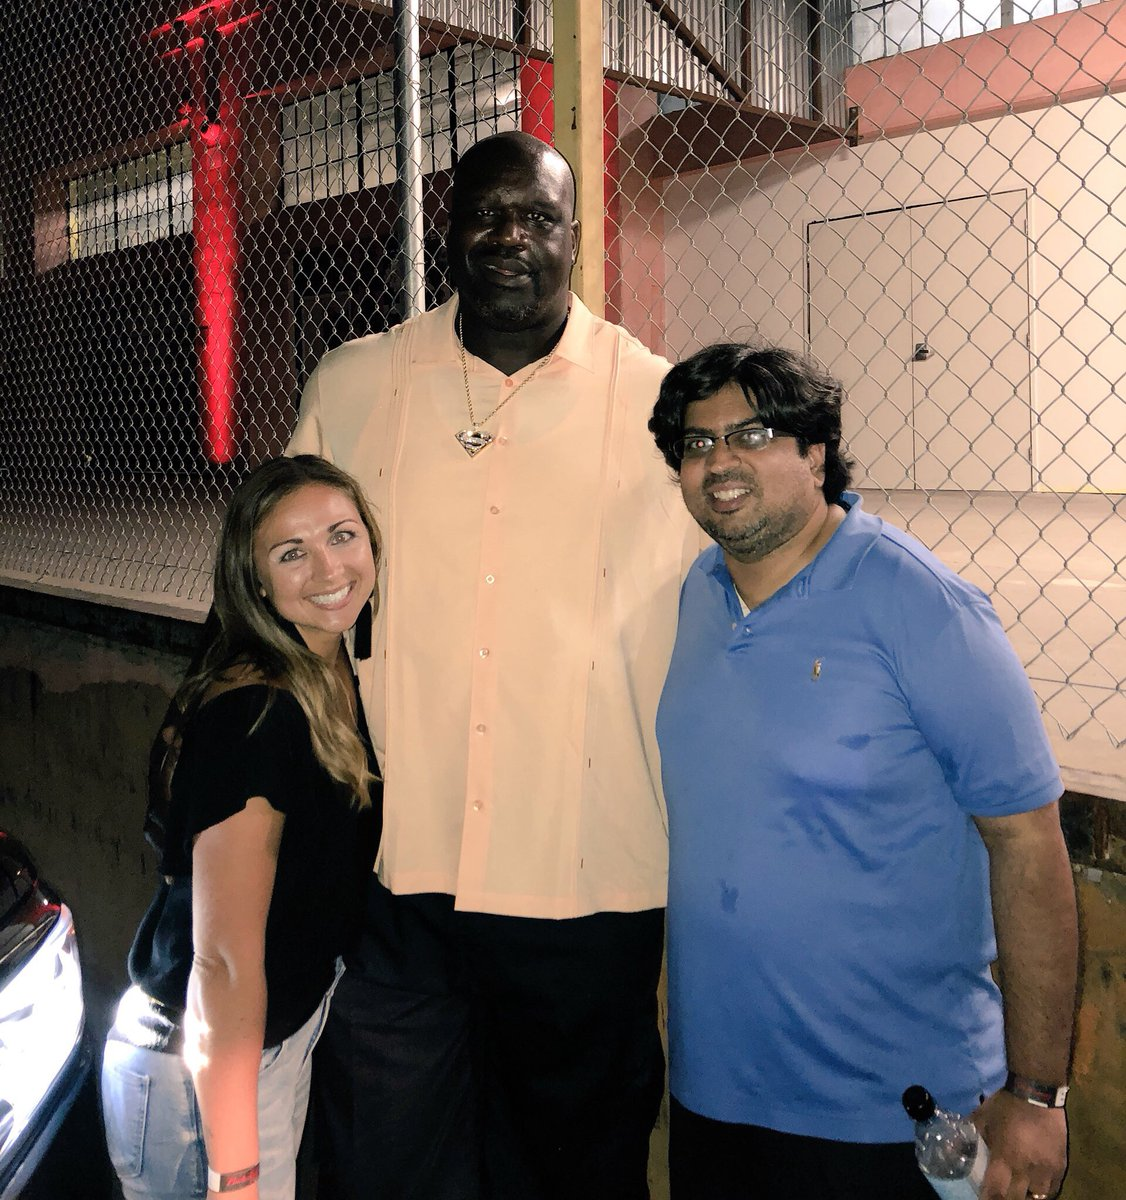 """""""just don't get shot tonight, okay?"""" — shaq, whispered in my ear right after this photo was taken 😂"""